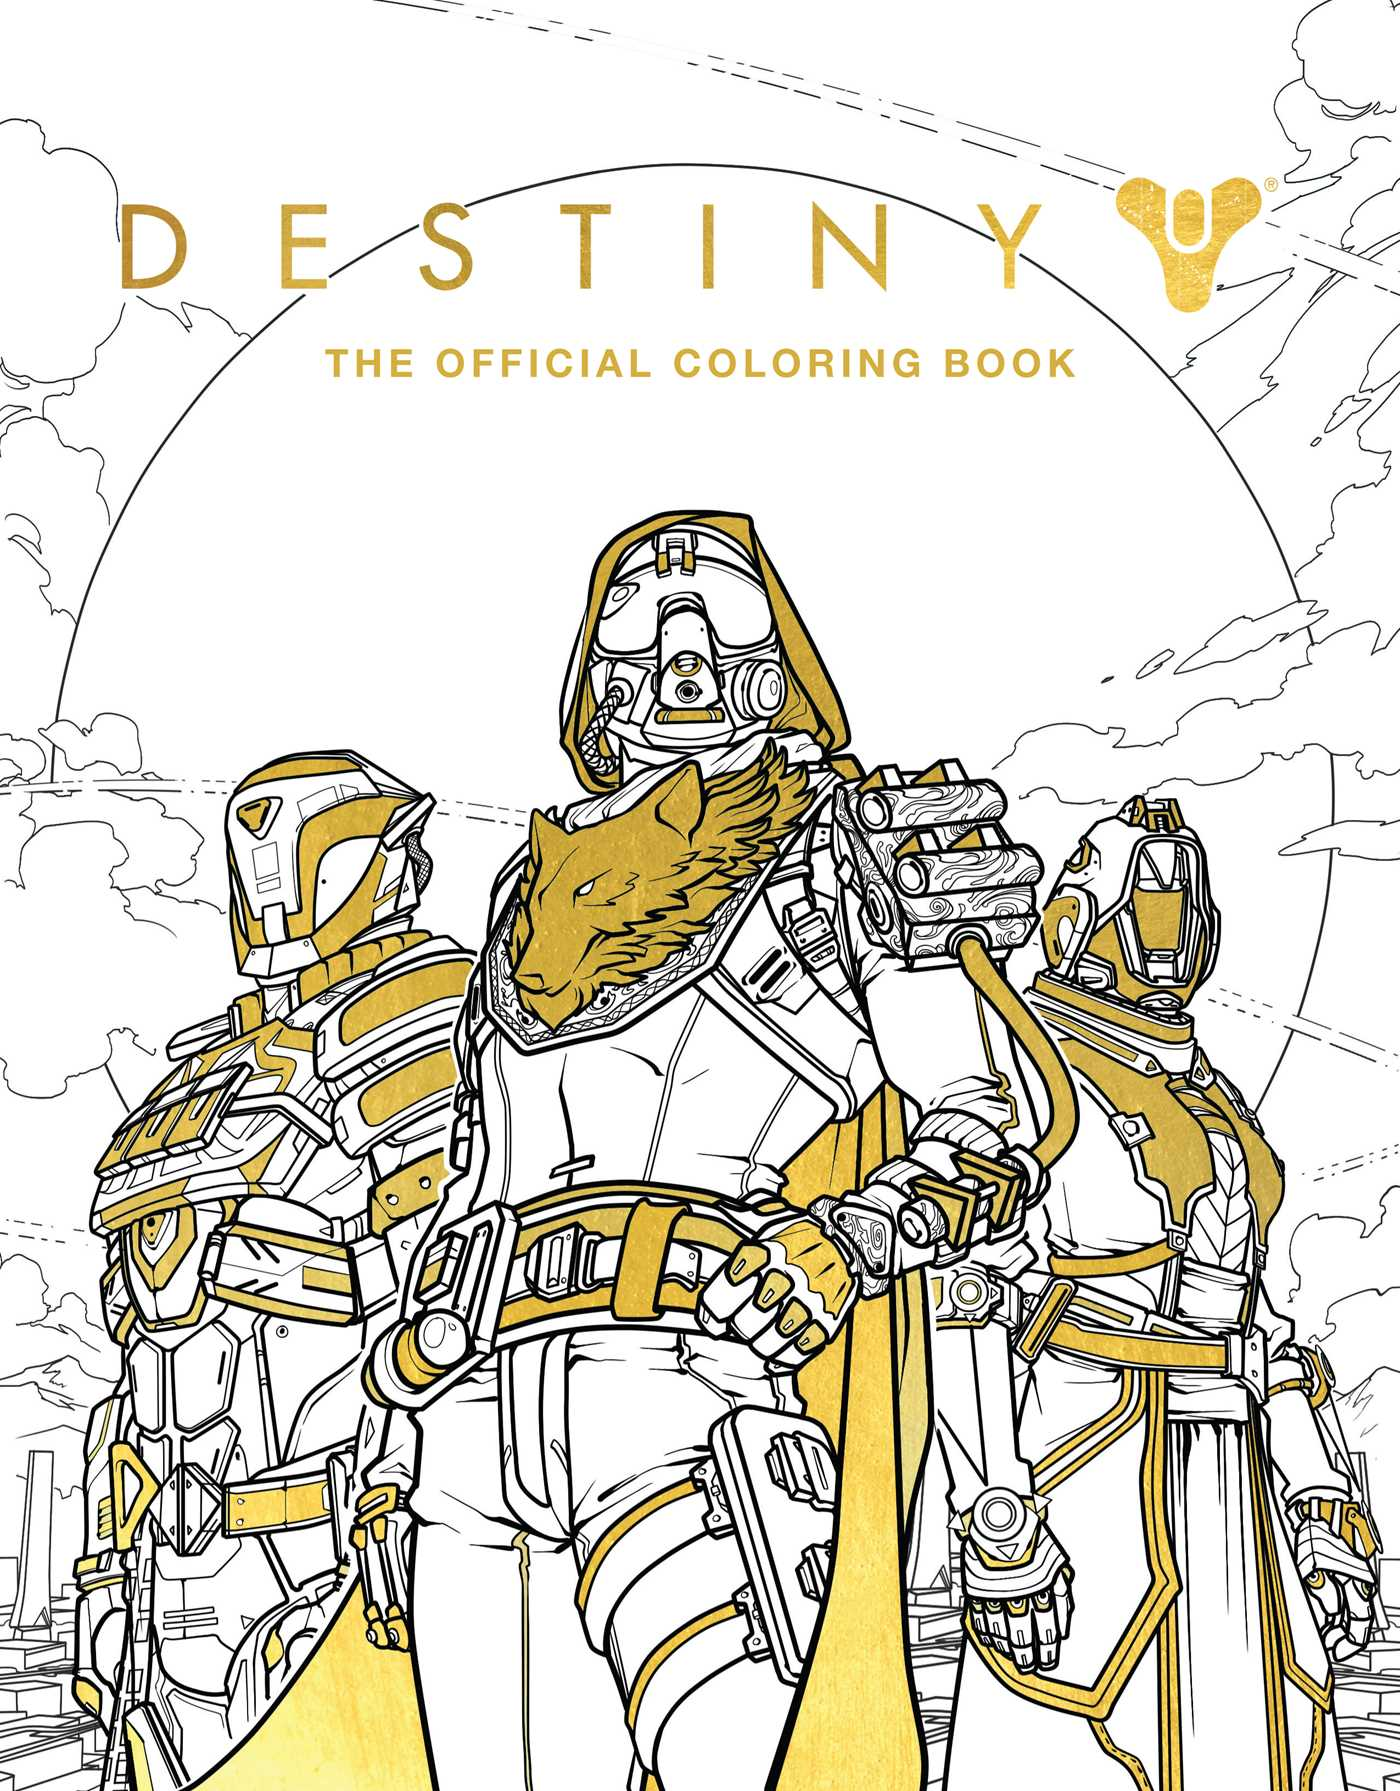 Destiny: The Official Coloring Book | Book by Bungie, Ze Carlos ...